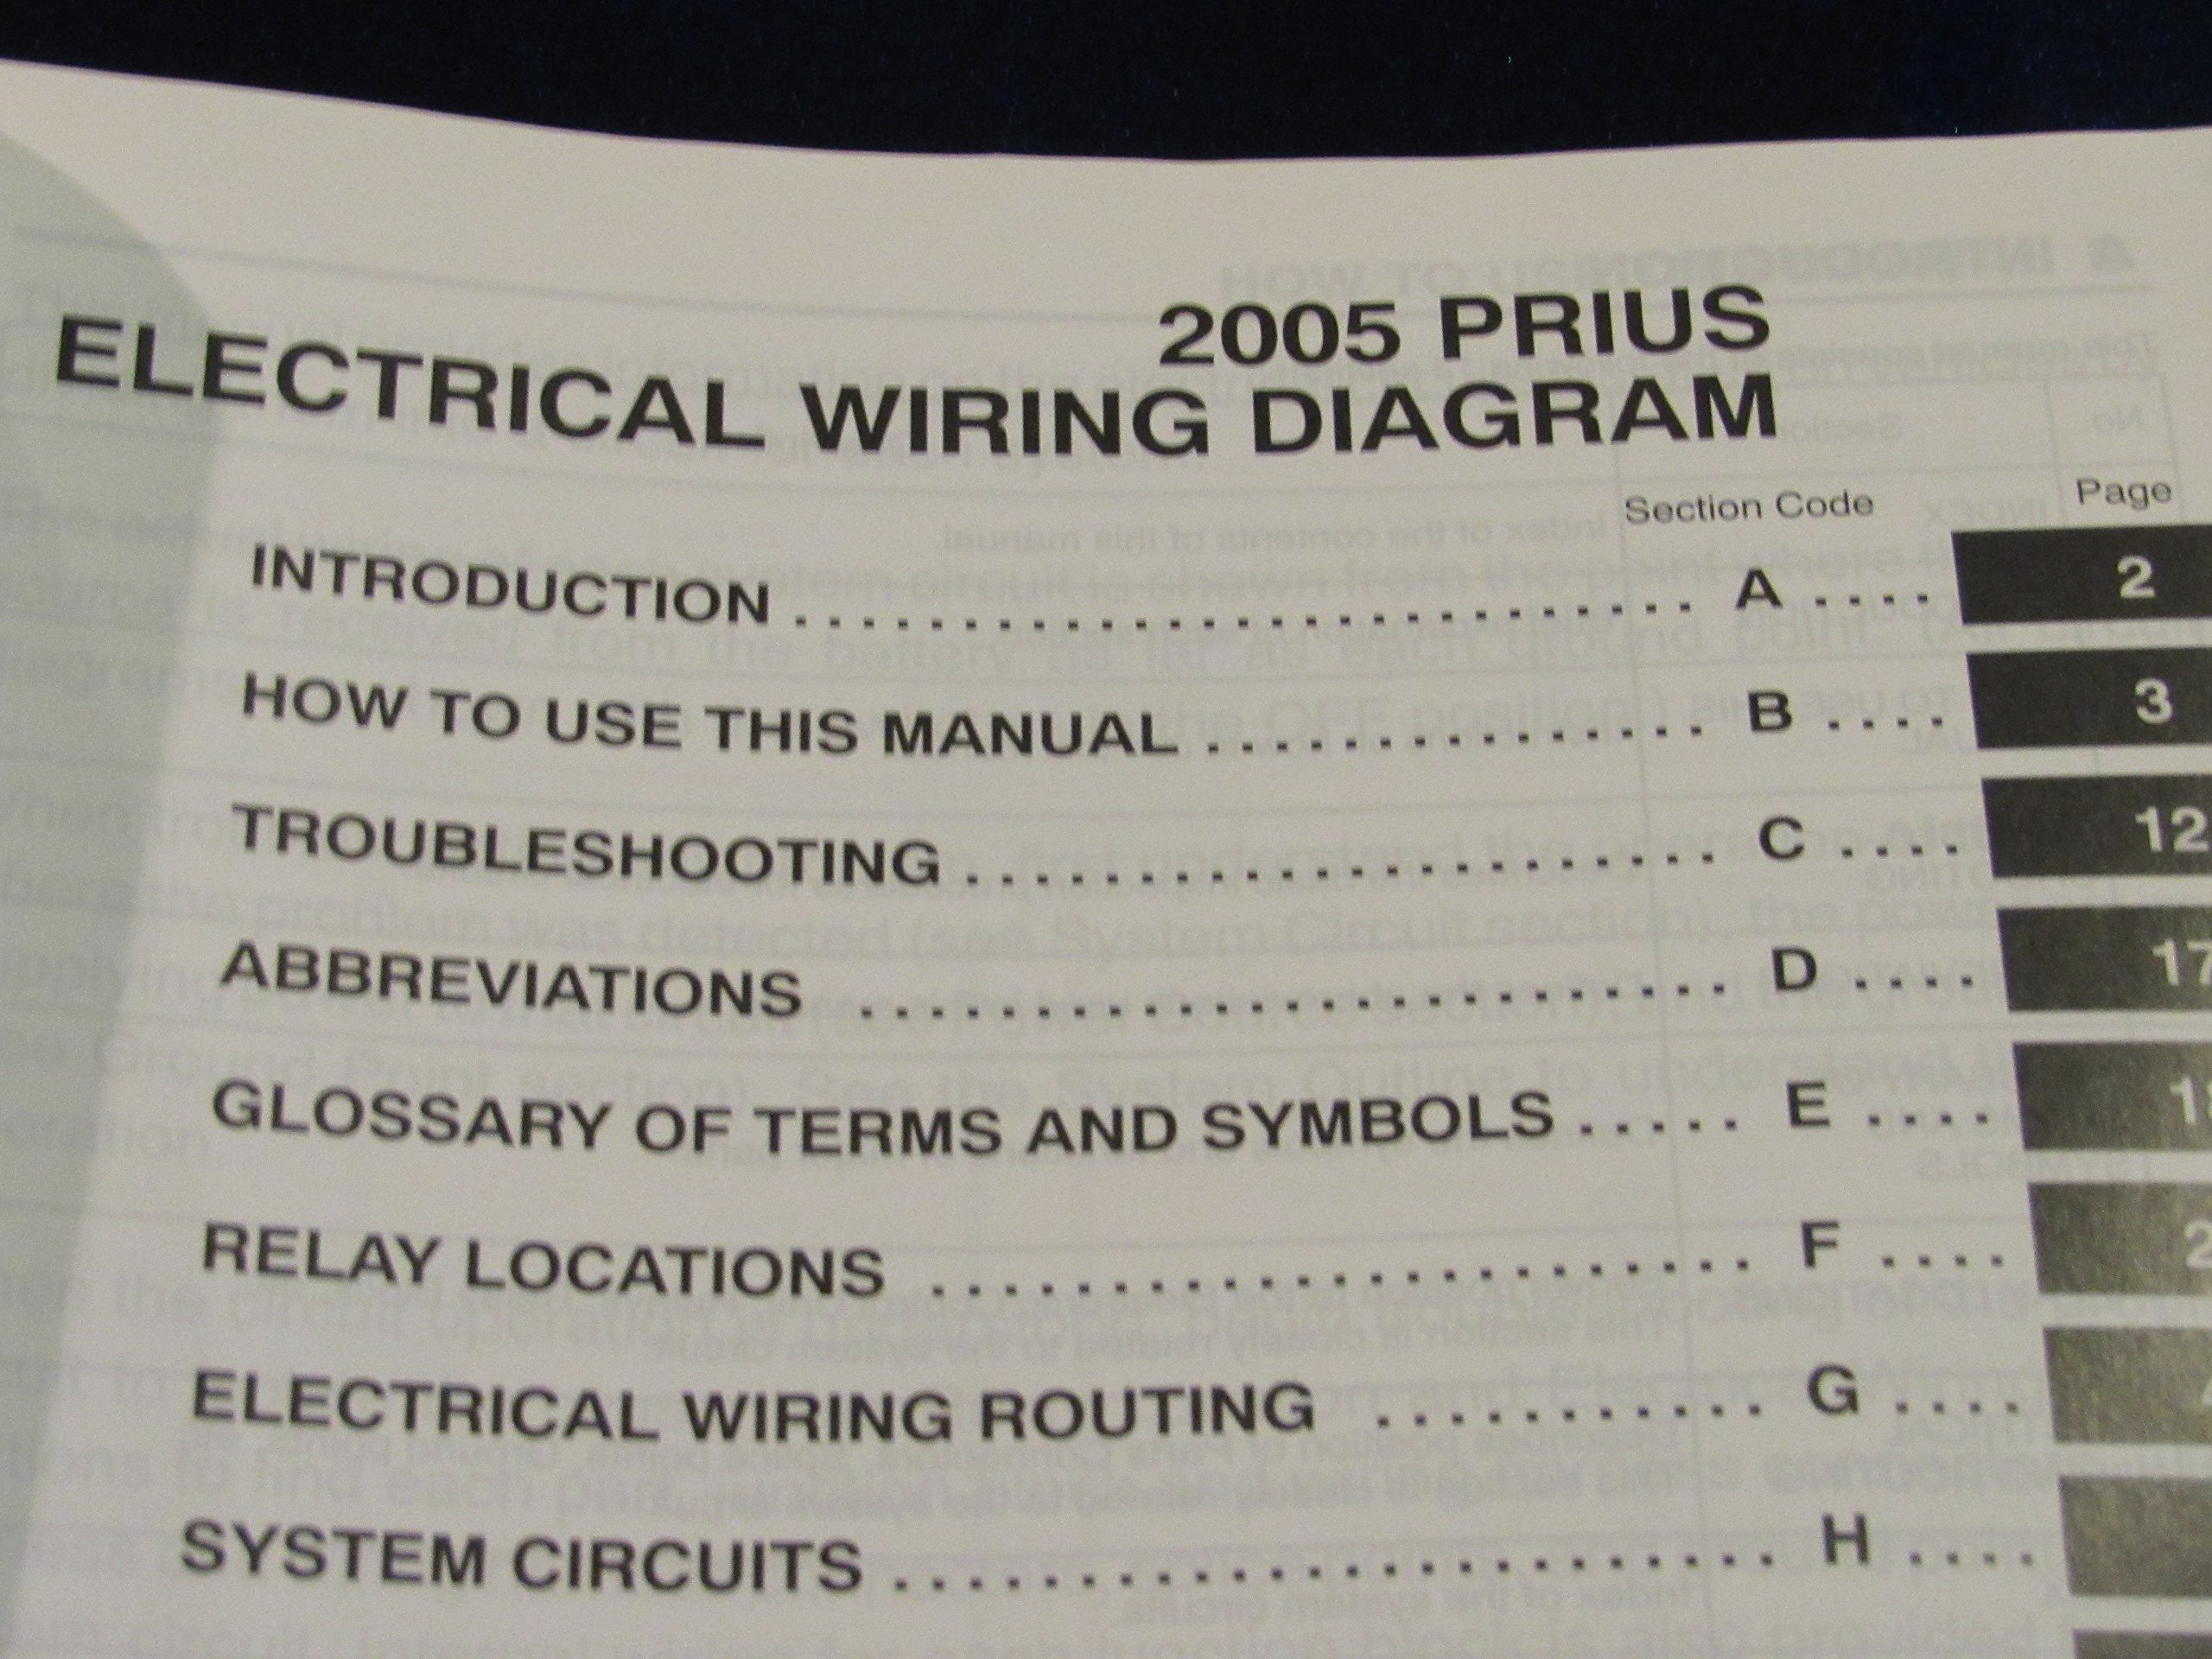 2005 Toyota Prius Electrical Wiring Diagram Manual Oem Amazon Com Books